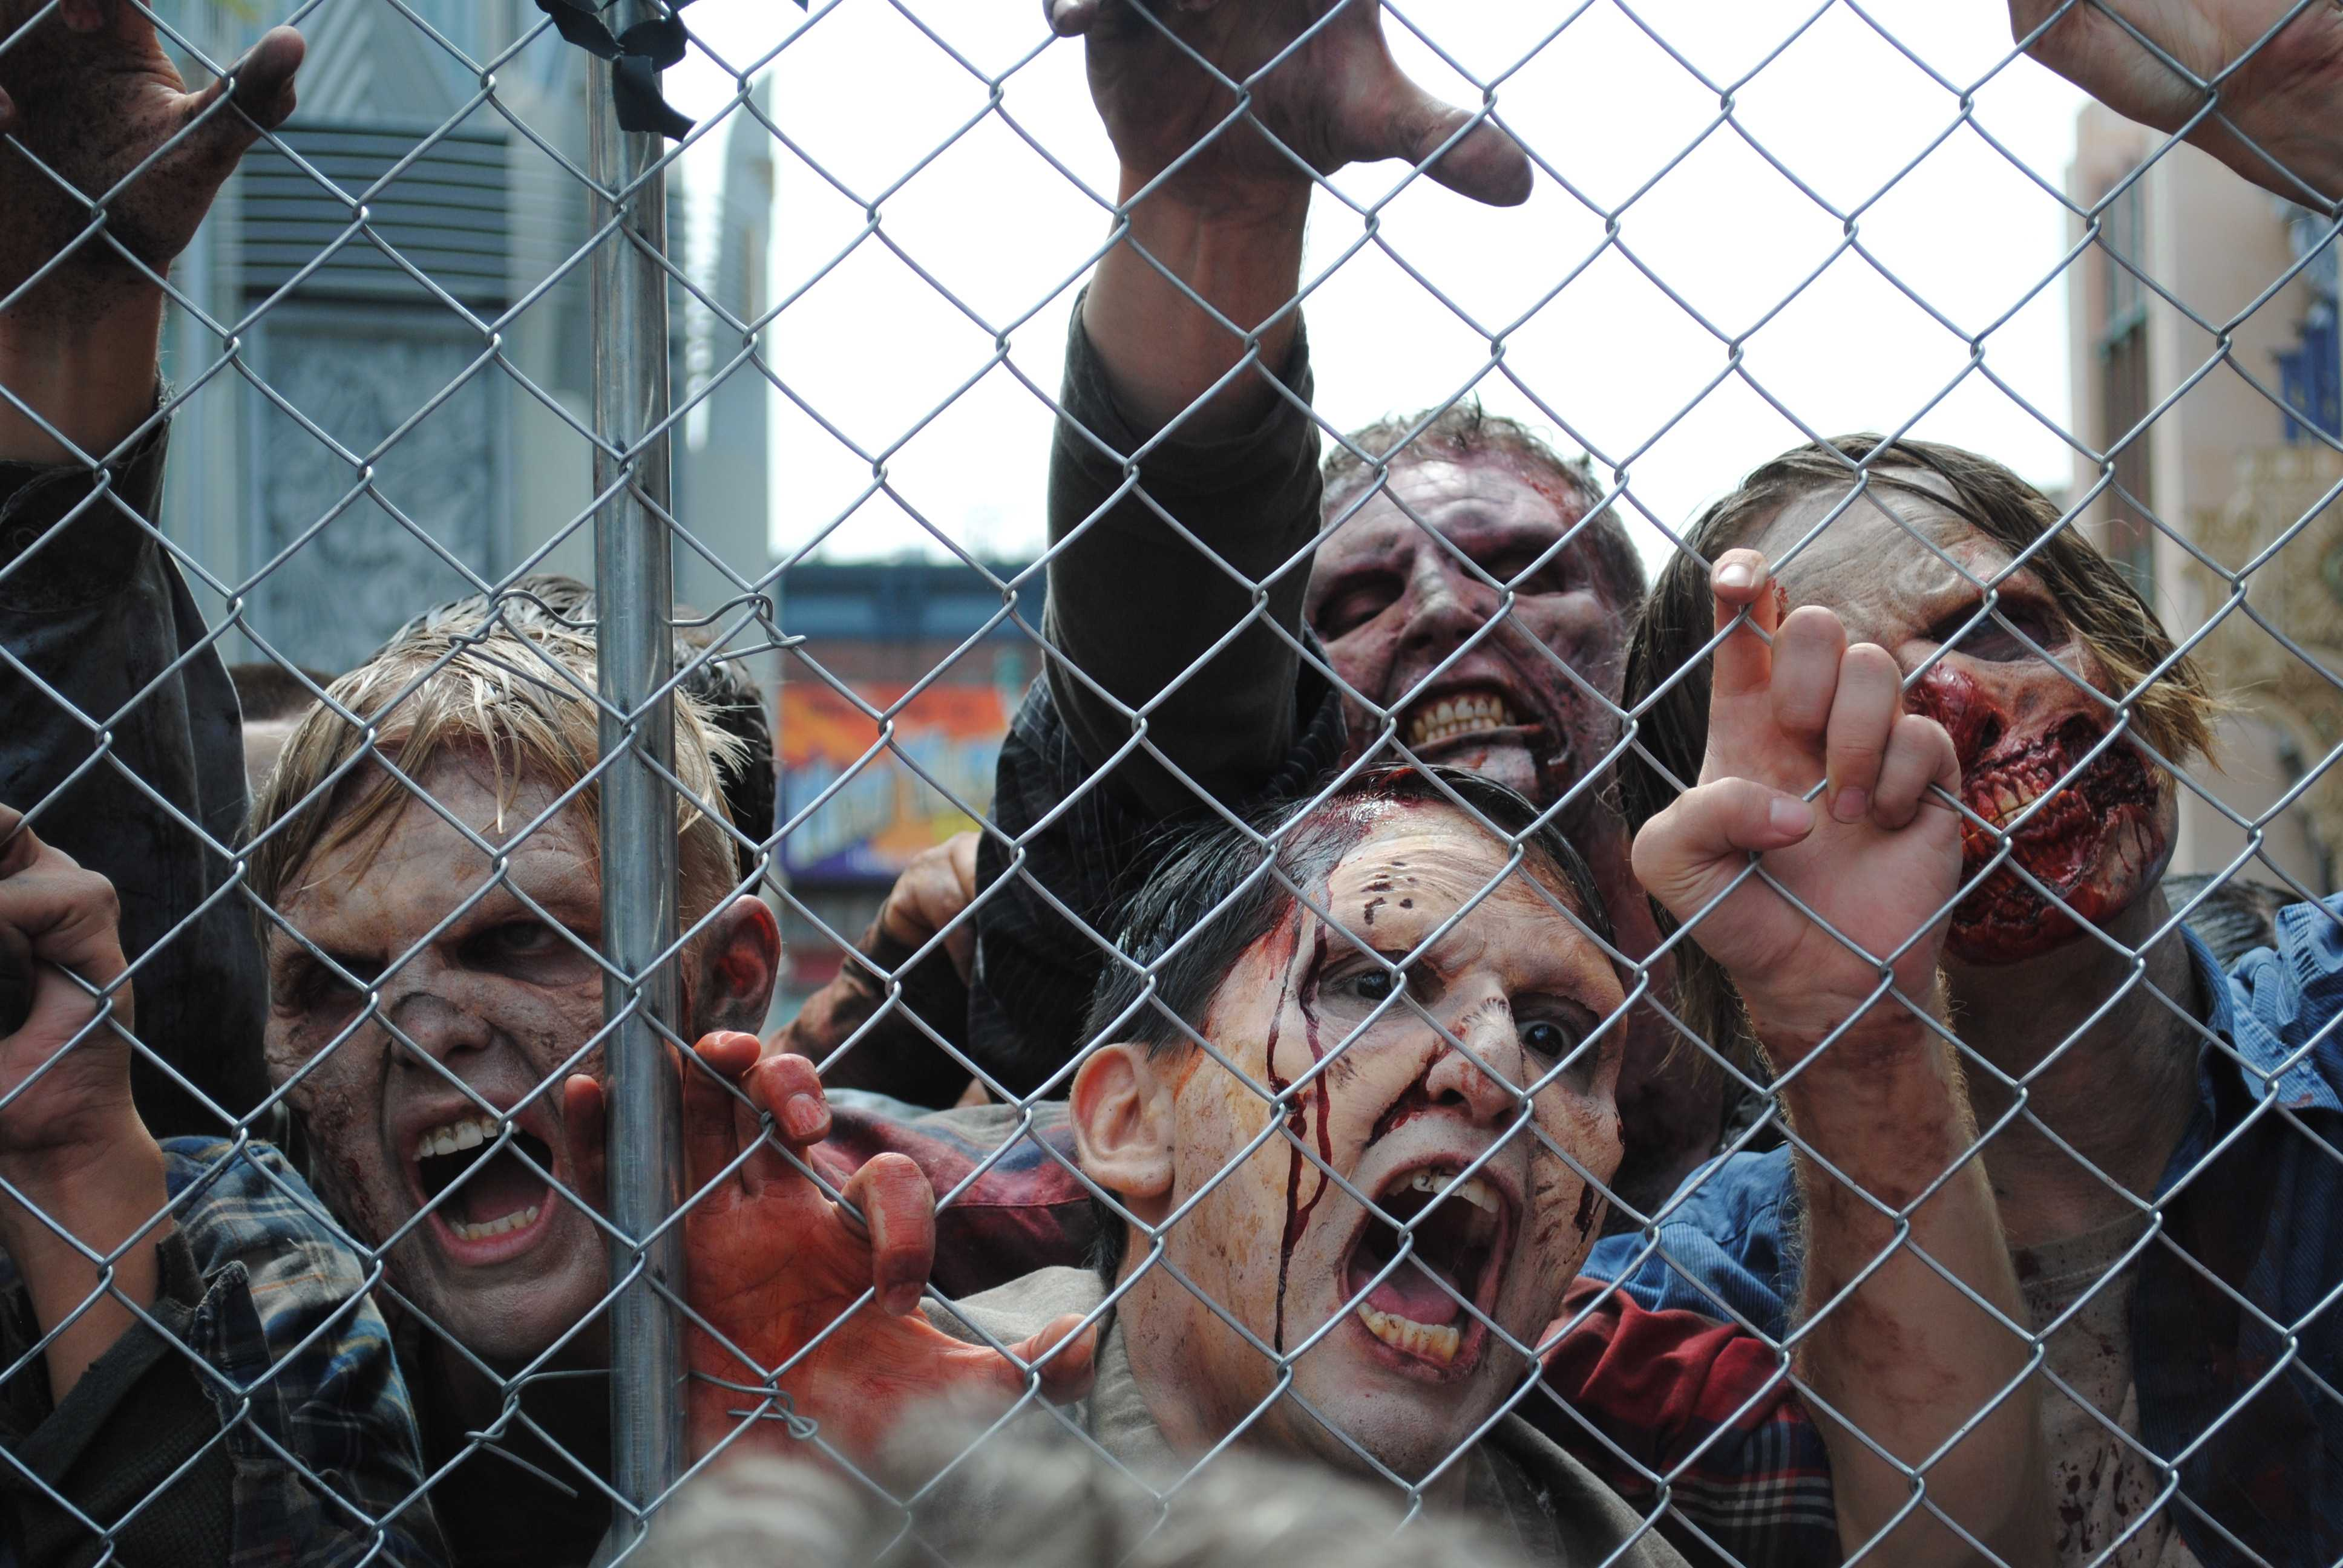 A+large+horde+of+%27walkers%27+try+to+get+through+the+fence.+Photo+credit%3A+Josue+Aguilar